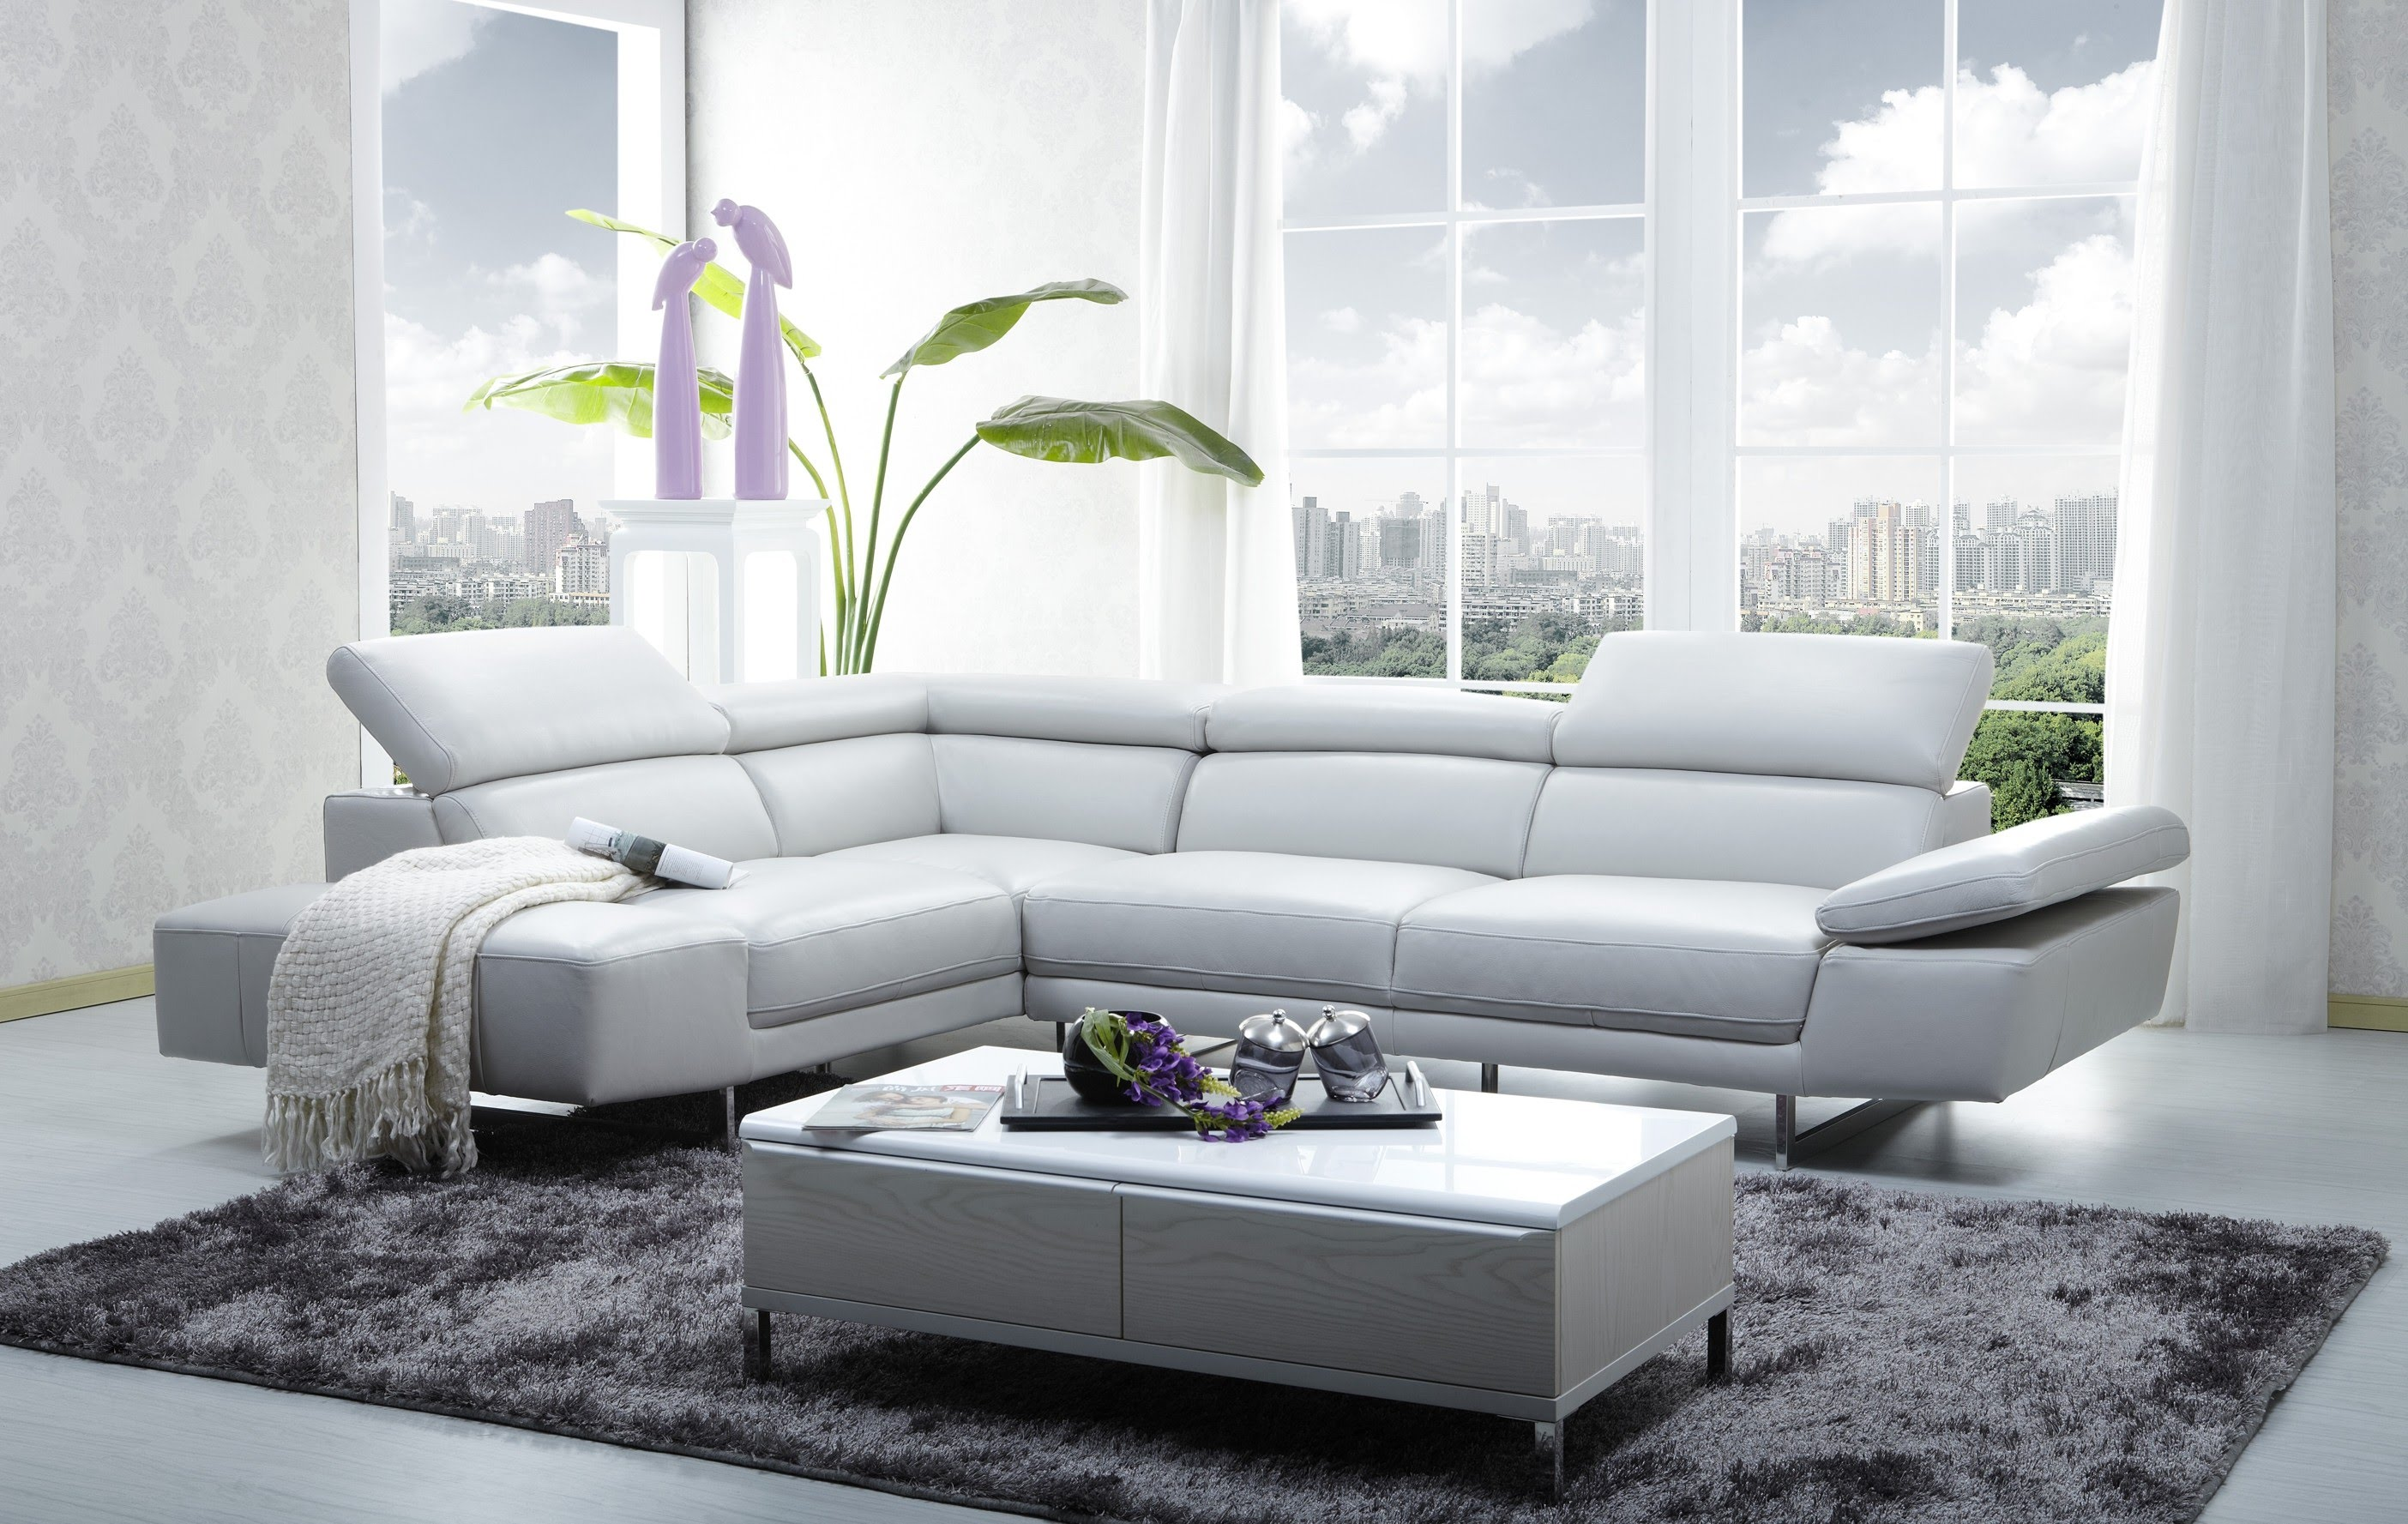 sofa-decoraca-moveis-santos-2